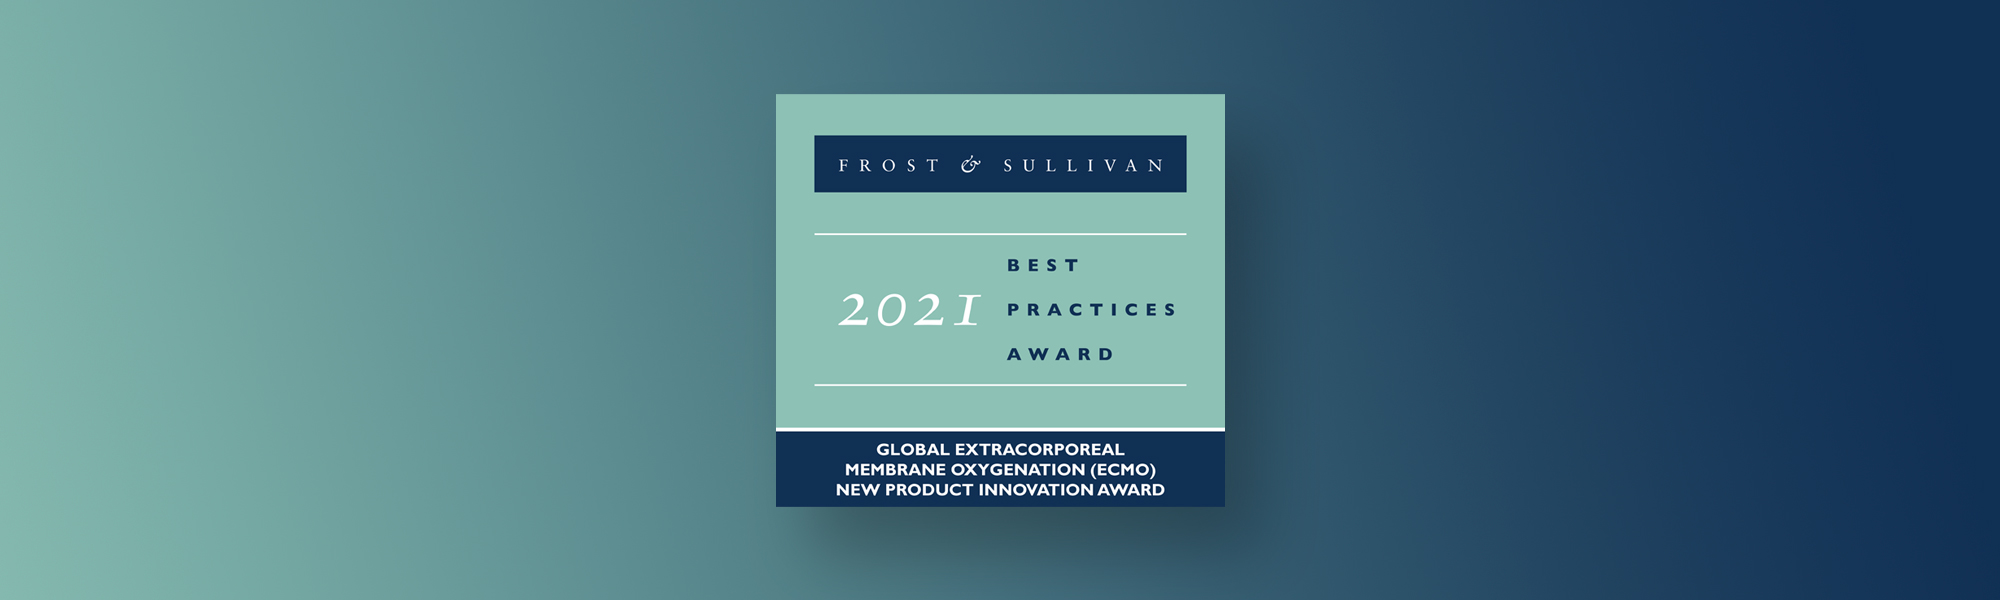 2021 Global Frost&Sullivan Award for New Product Innovation in the ECMO industry